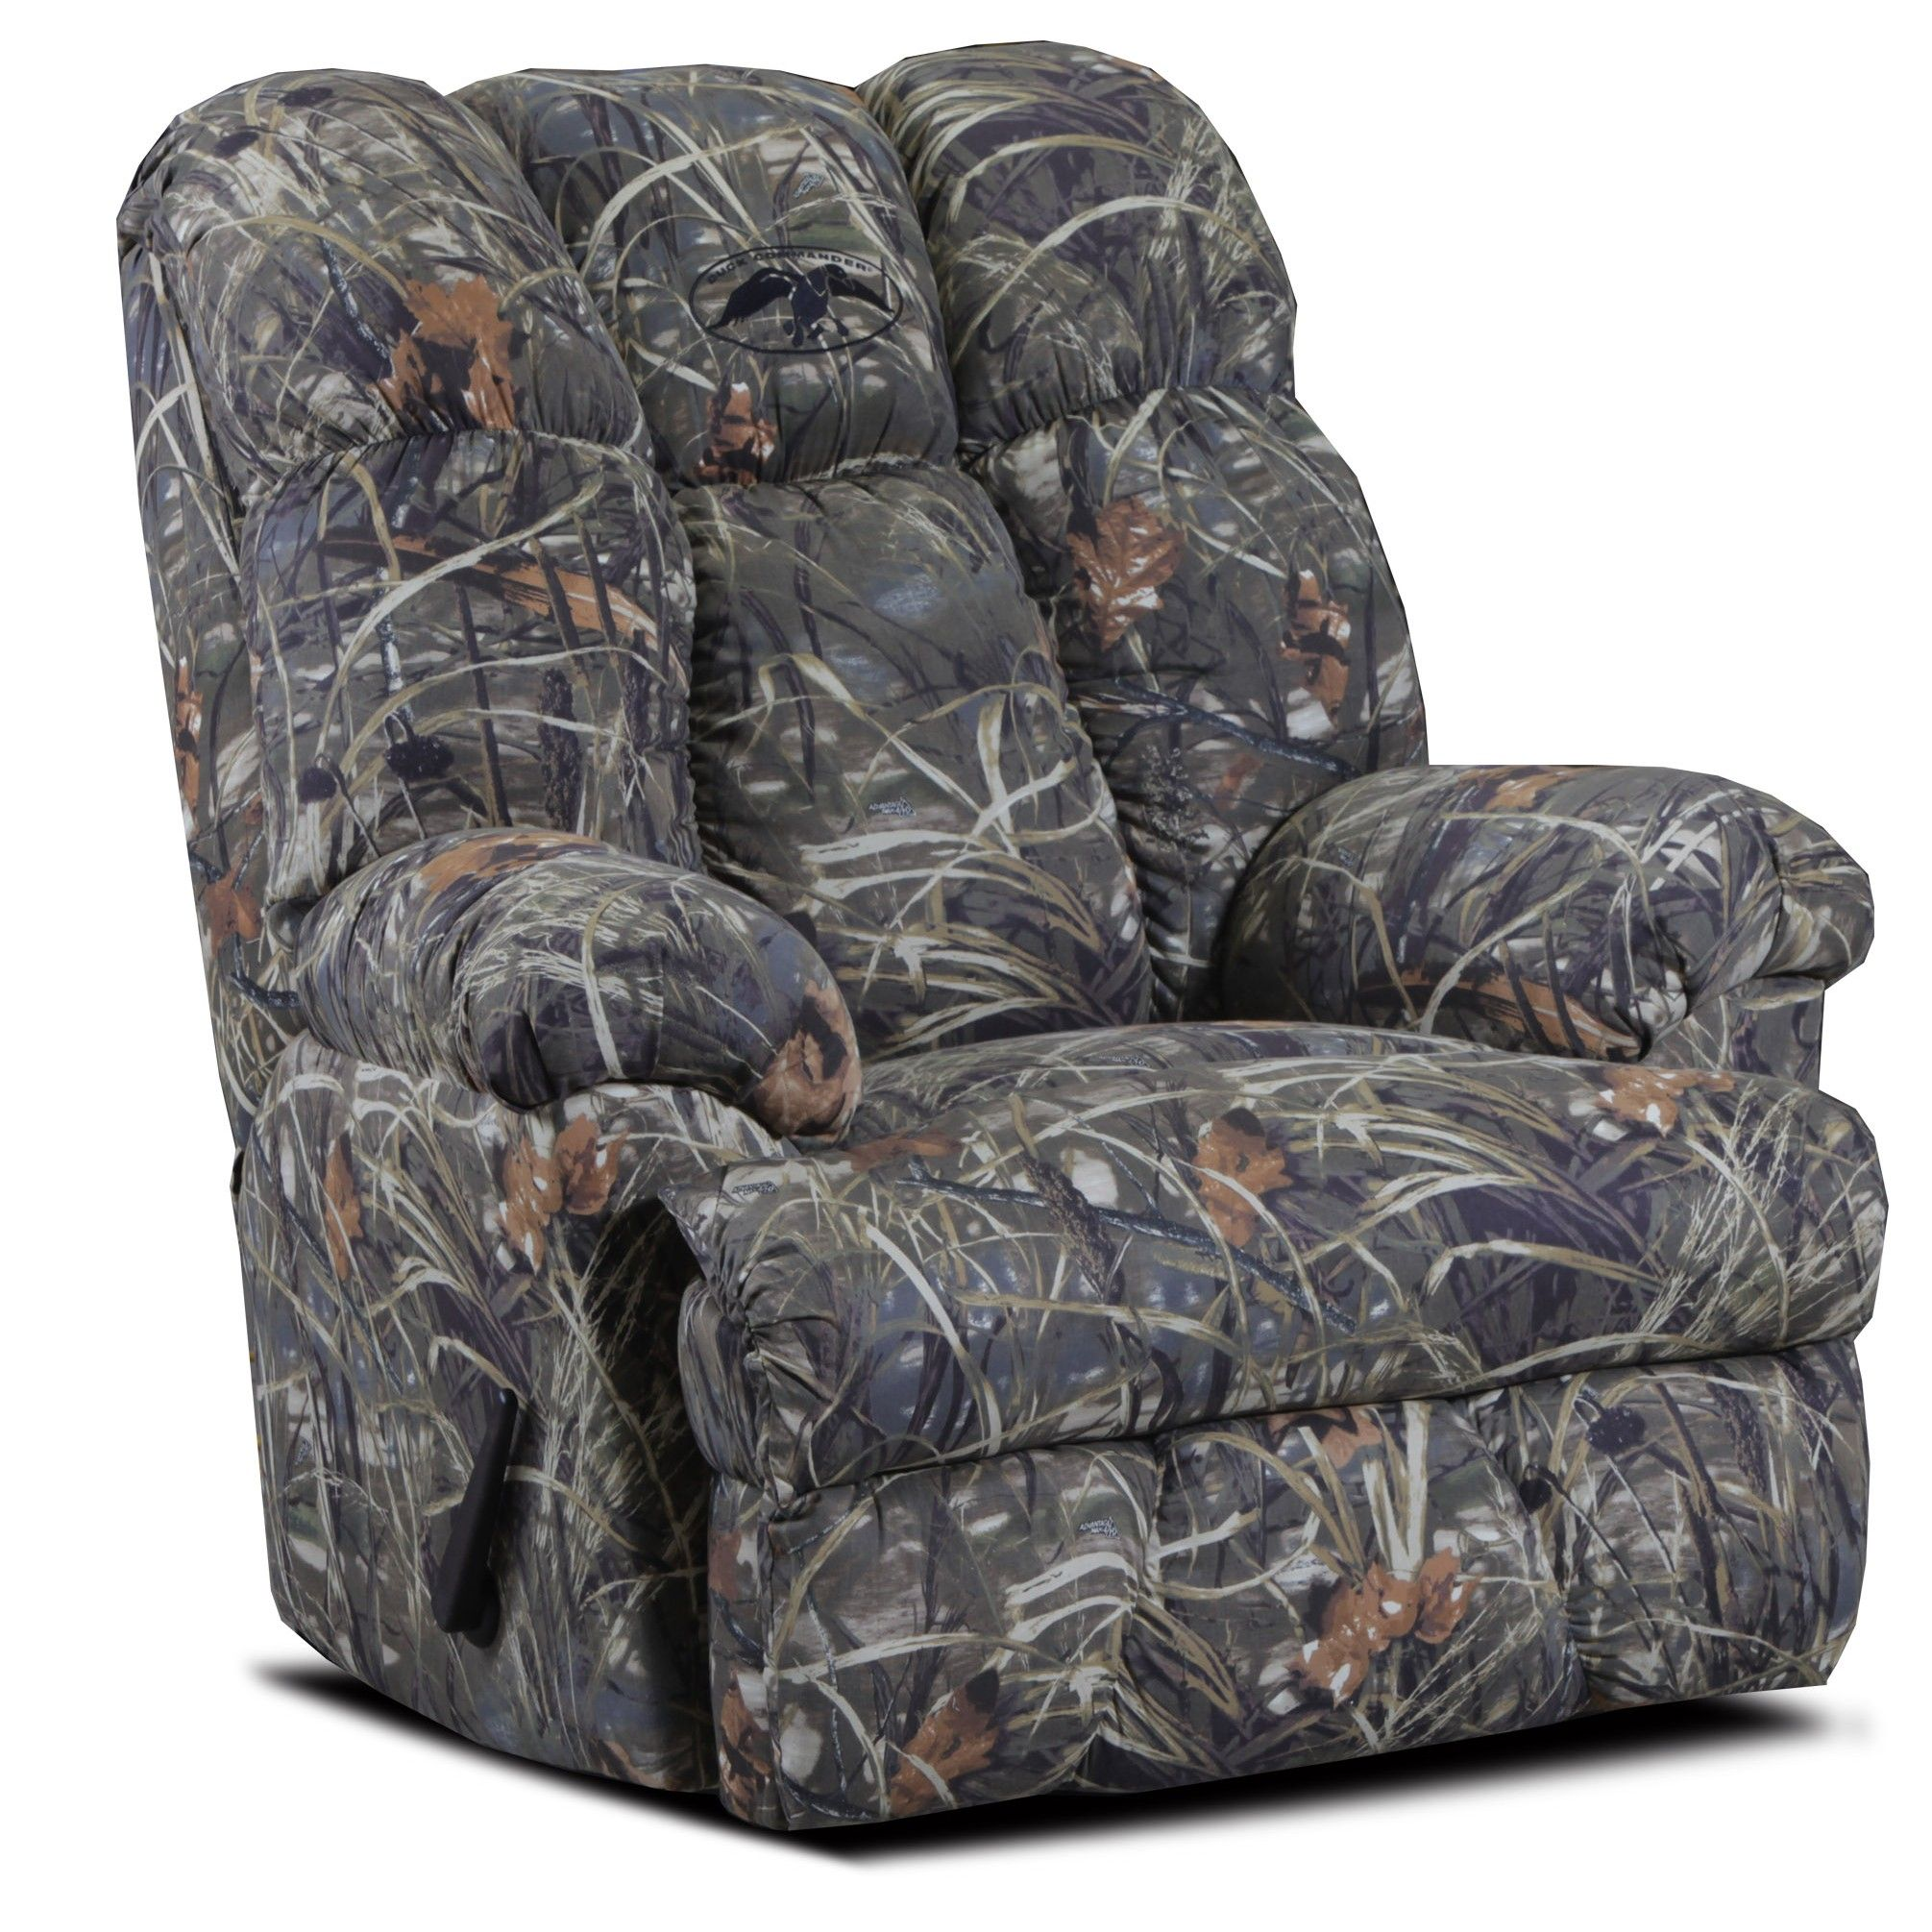 Camo Recliner Chair Camo Reclining Sofa Camo Reclining Sofa N 1003 Affordable